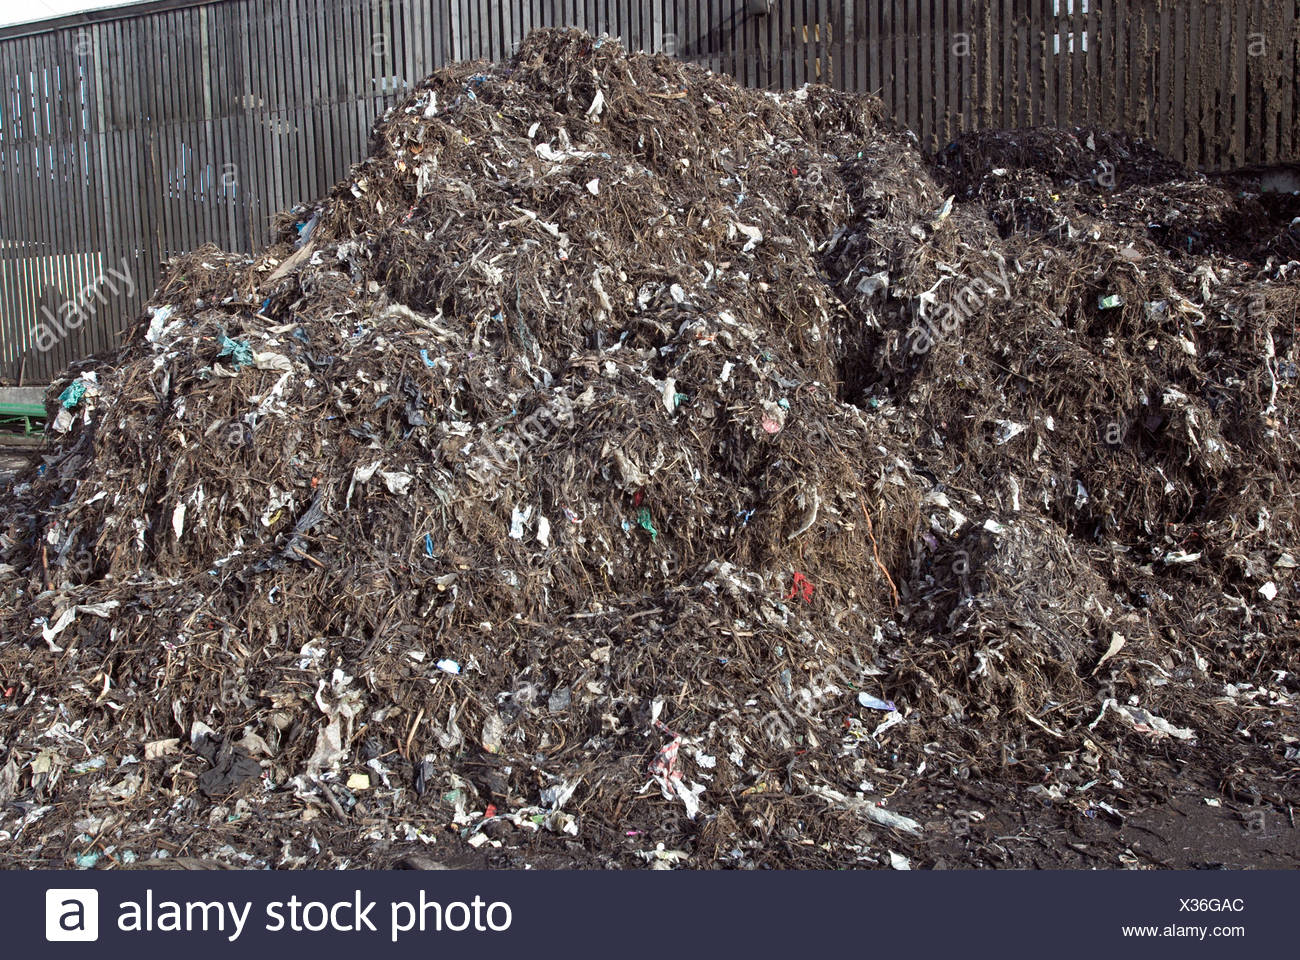 Recycled waste compost heap - Stock Image